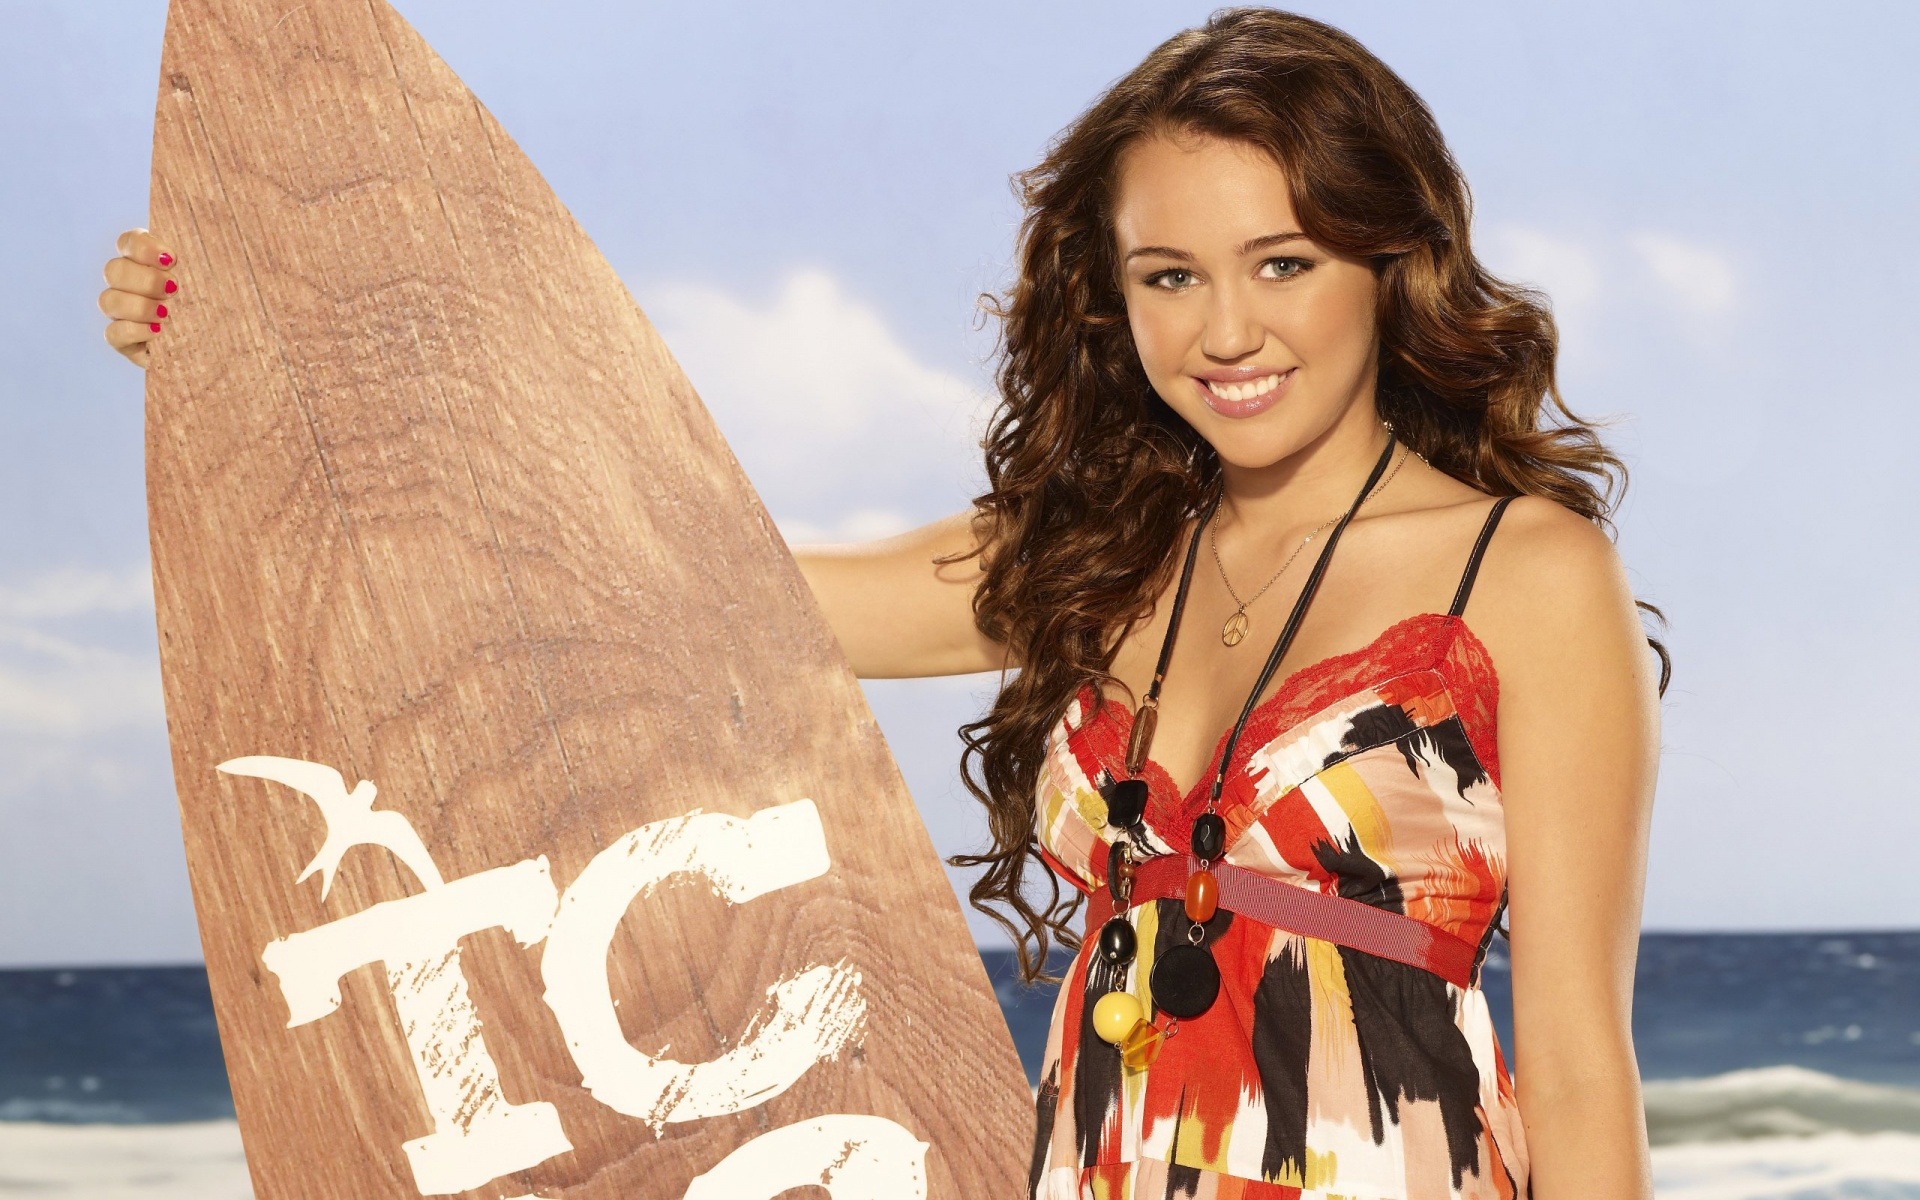 miley cyrus images hd A35